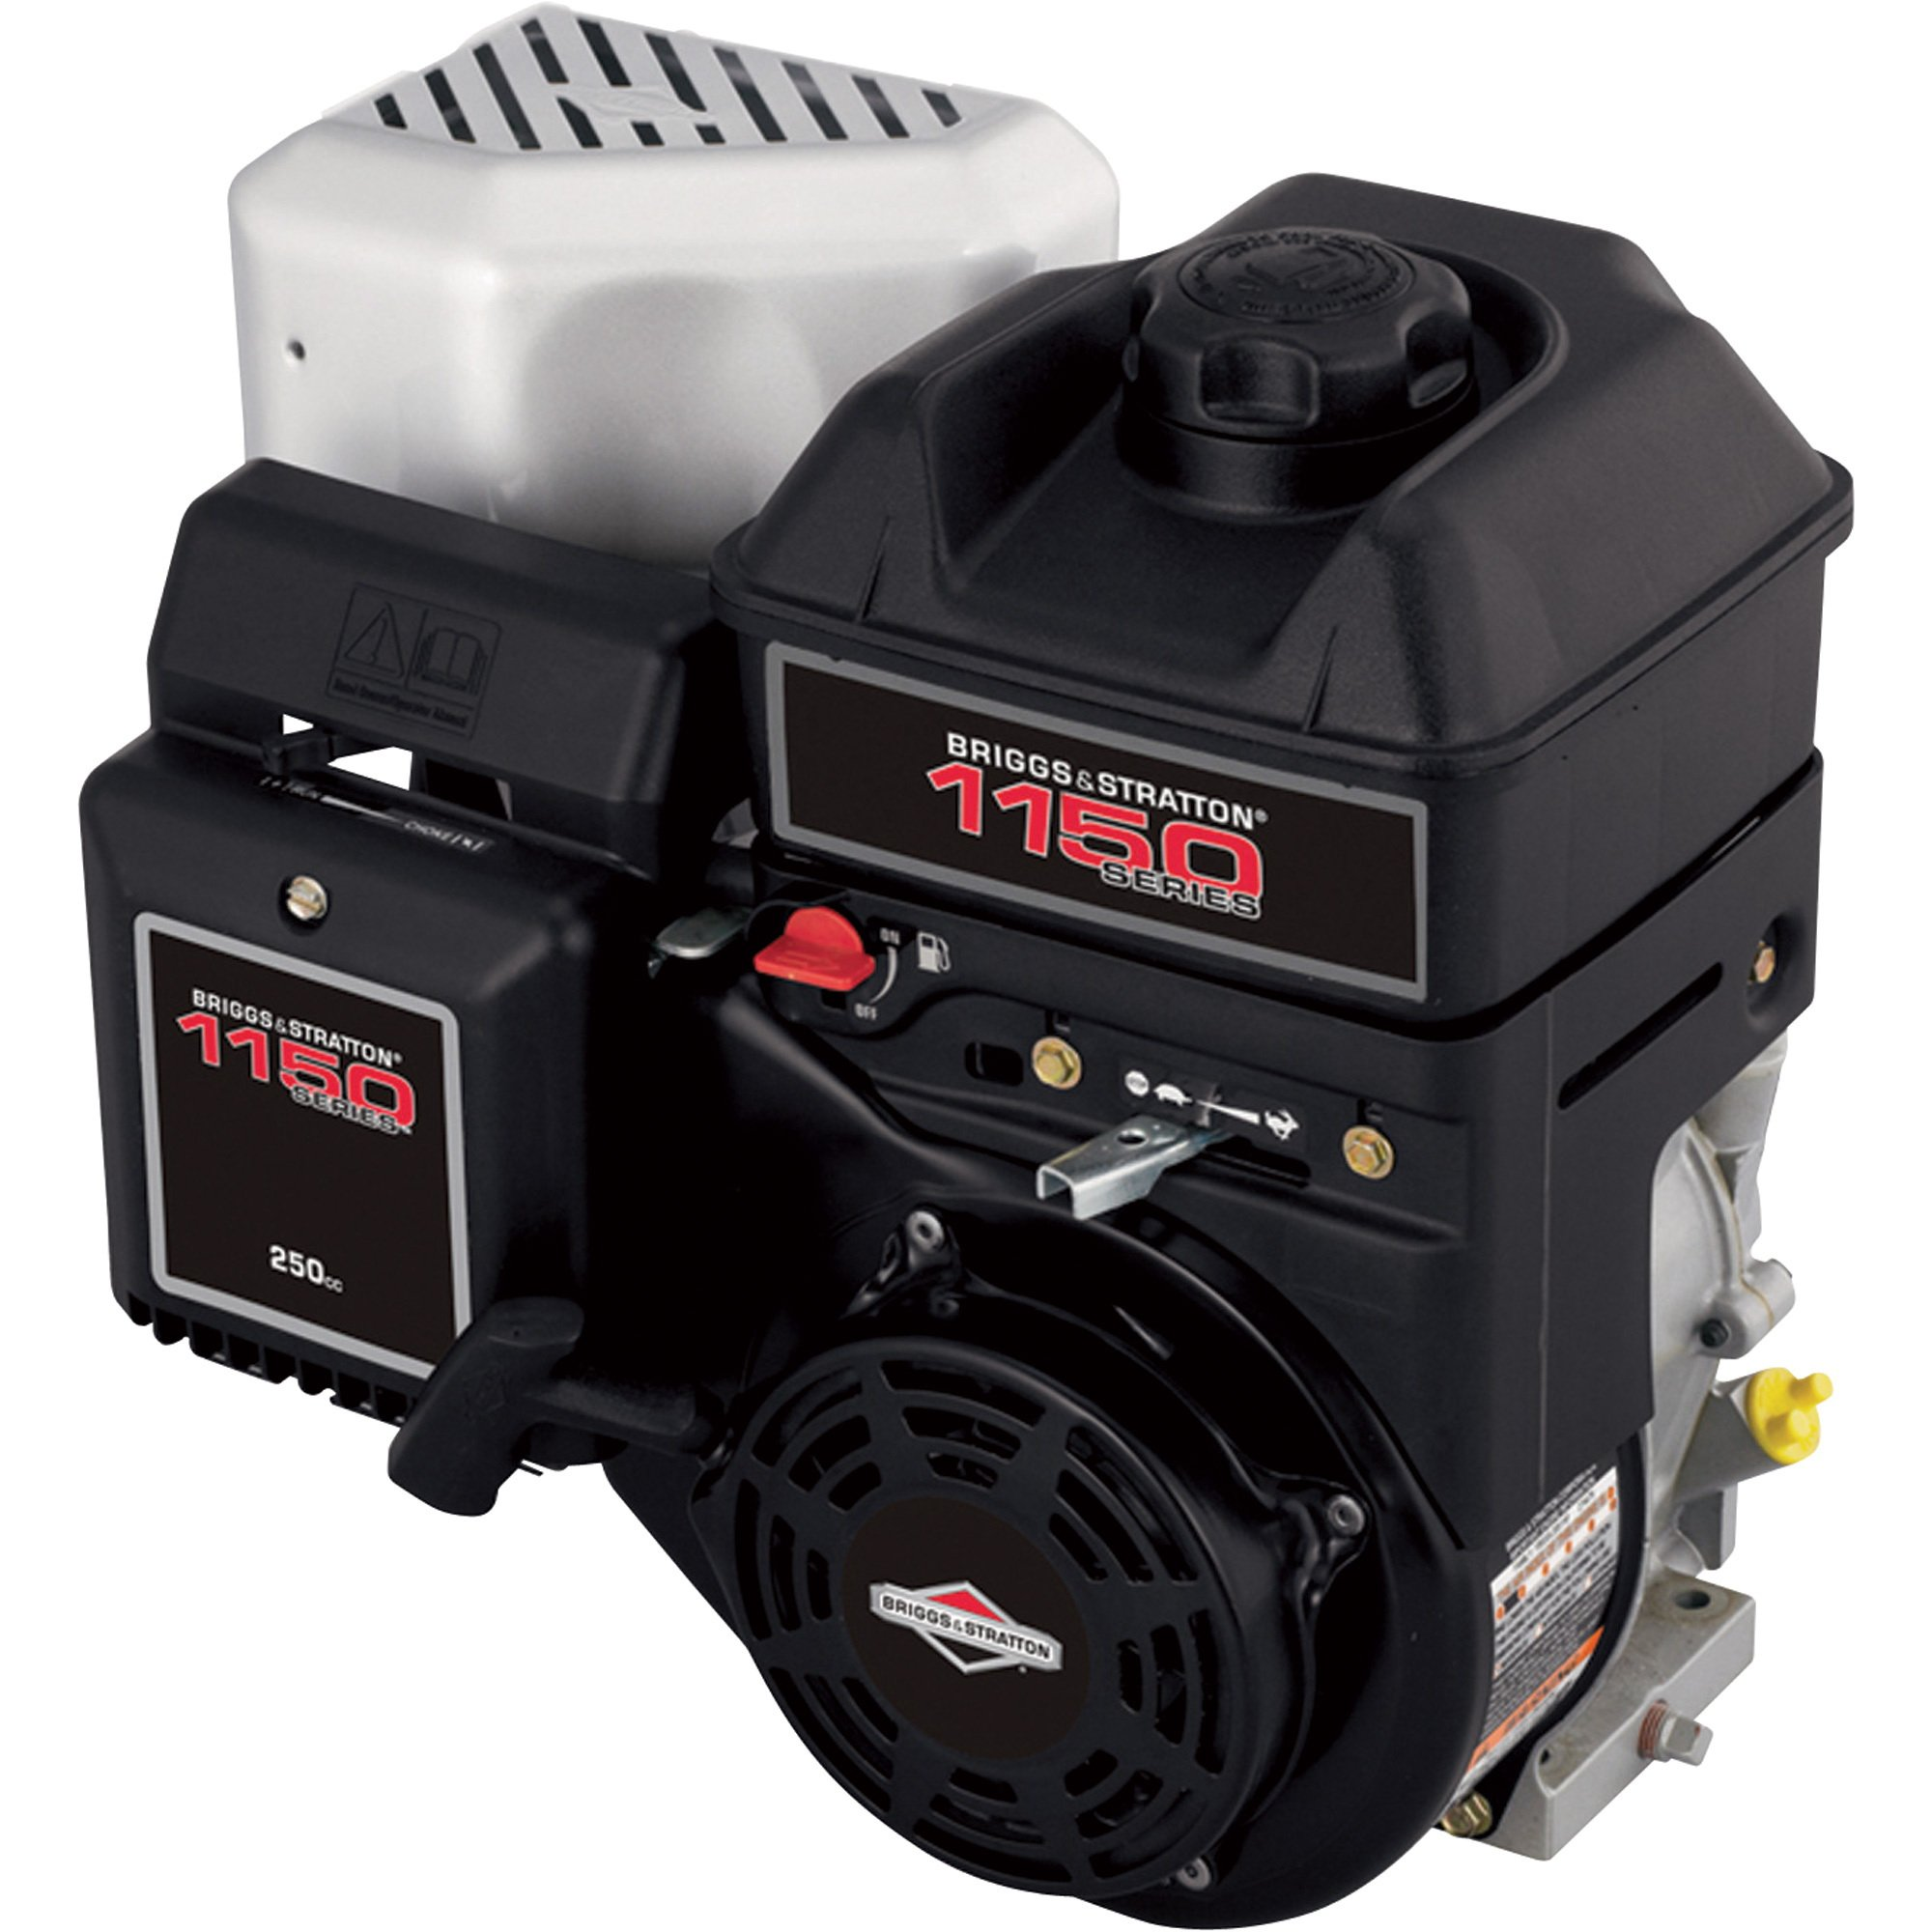 I Need A Wiring Diagram For A Series 1150  250cc   2013  Briggs  U0026 Stratton Motor With Electric